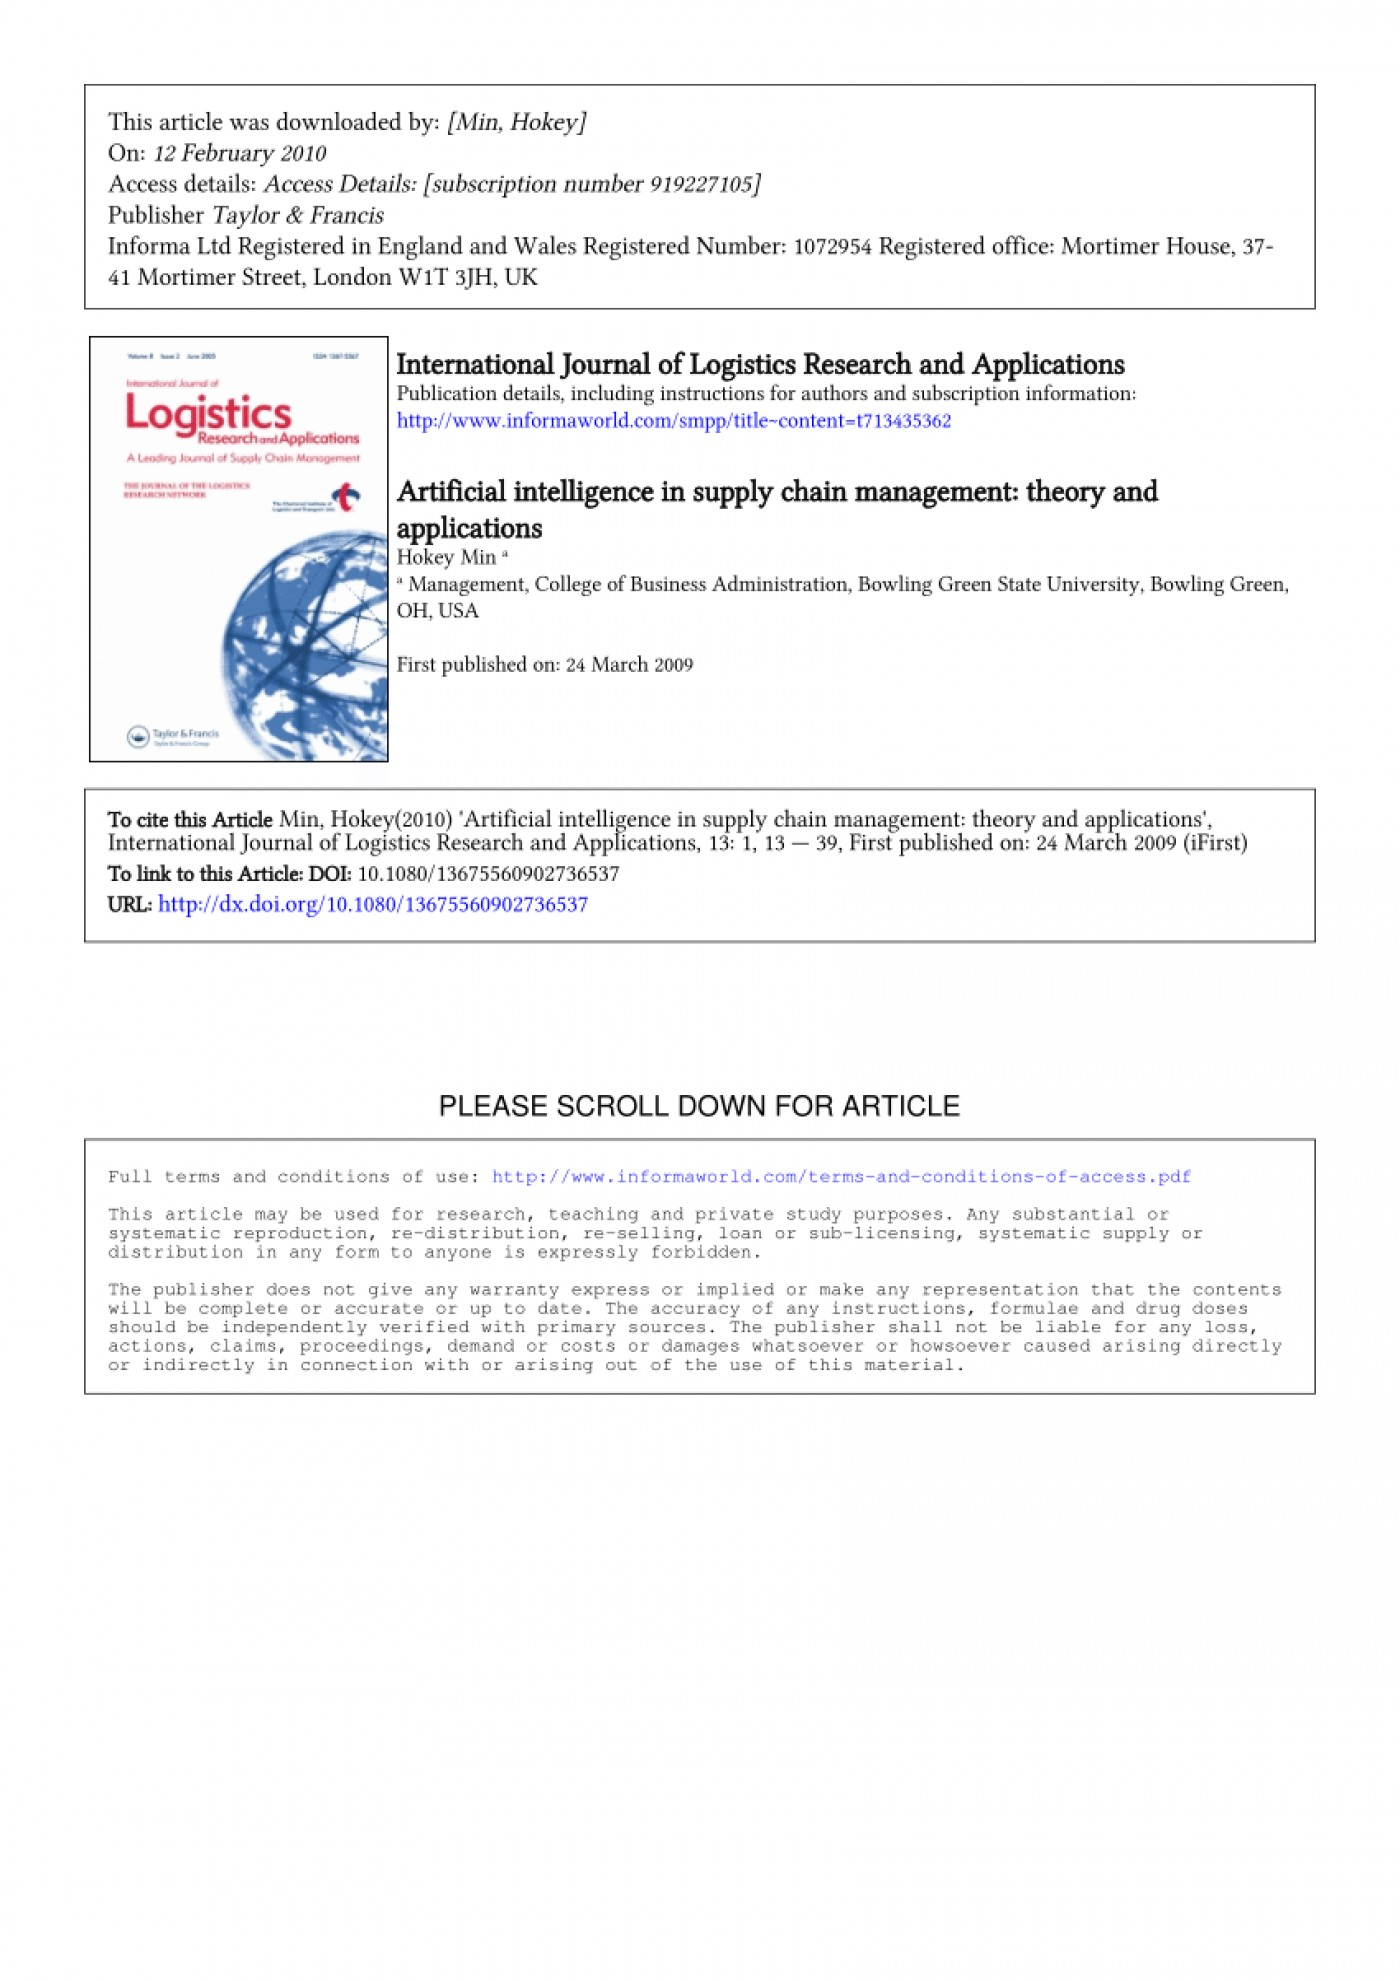 008 Research Paper Artificial Intelligence Papers Download Wonderful 1400